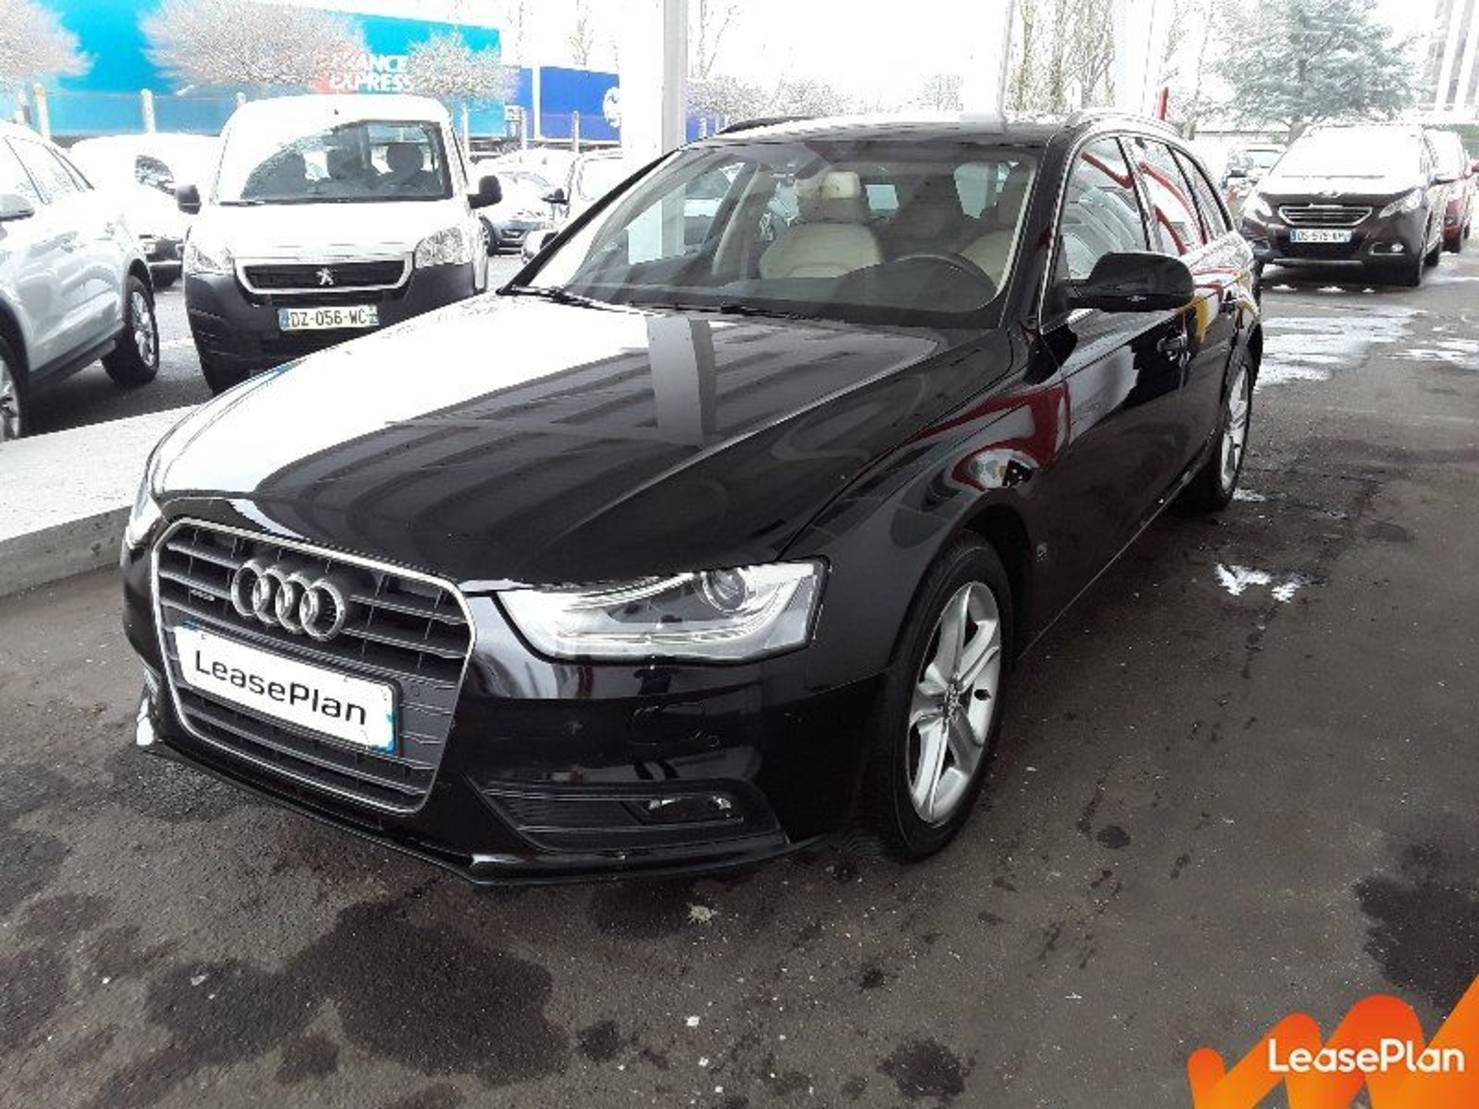 Audi A4 2.0 TDI 177 Quattro, Ambition Luxe S Tronic A detail2